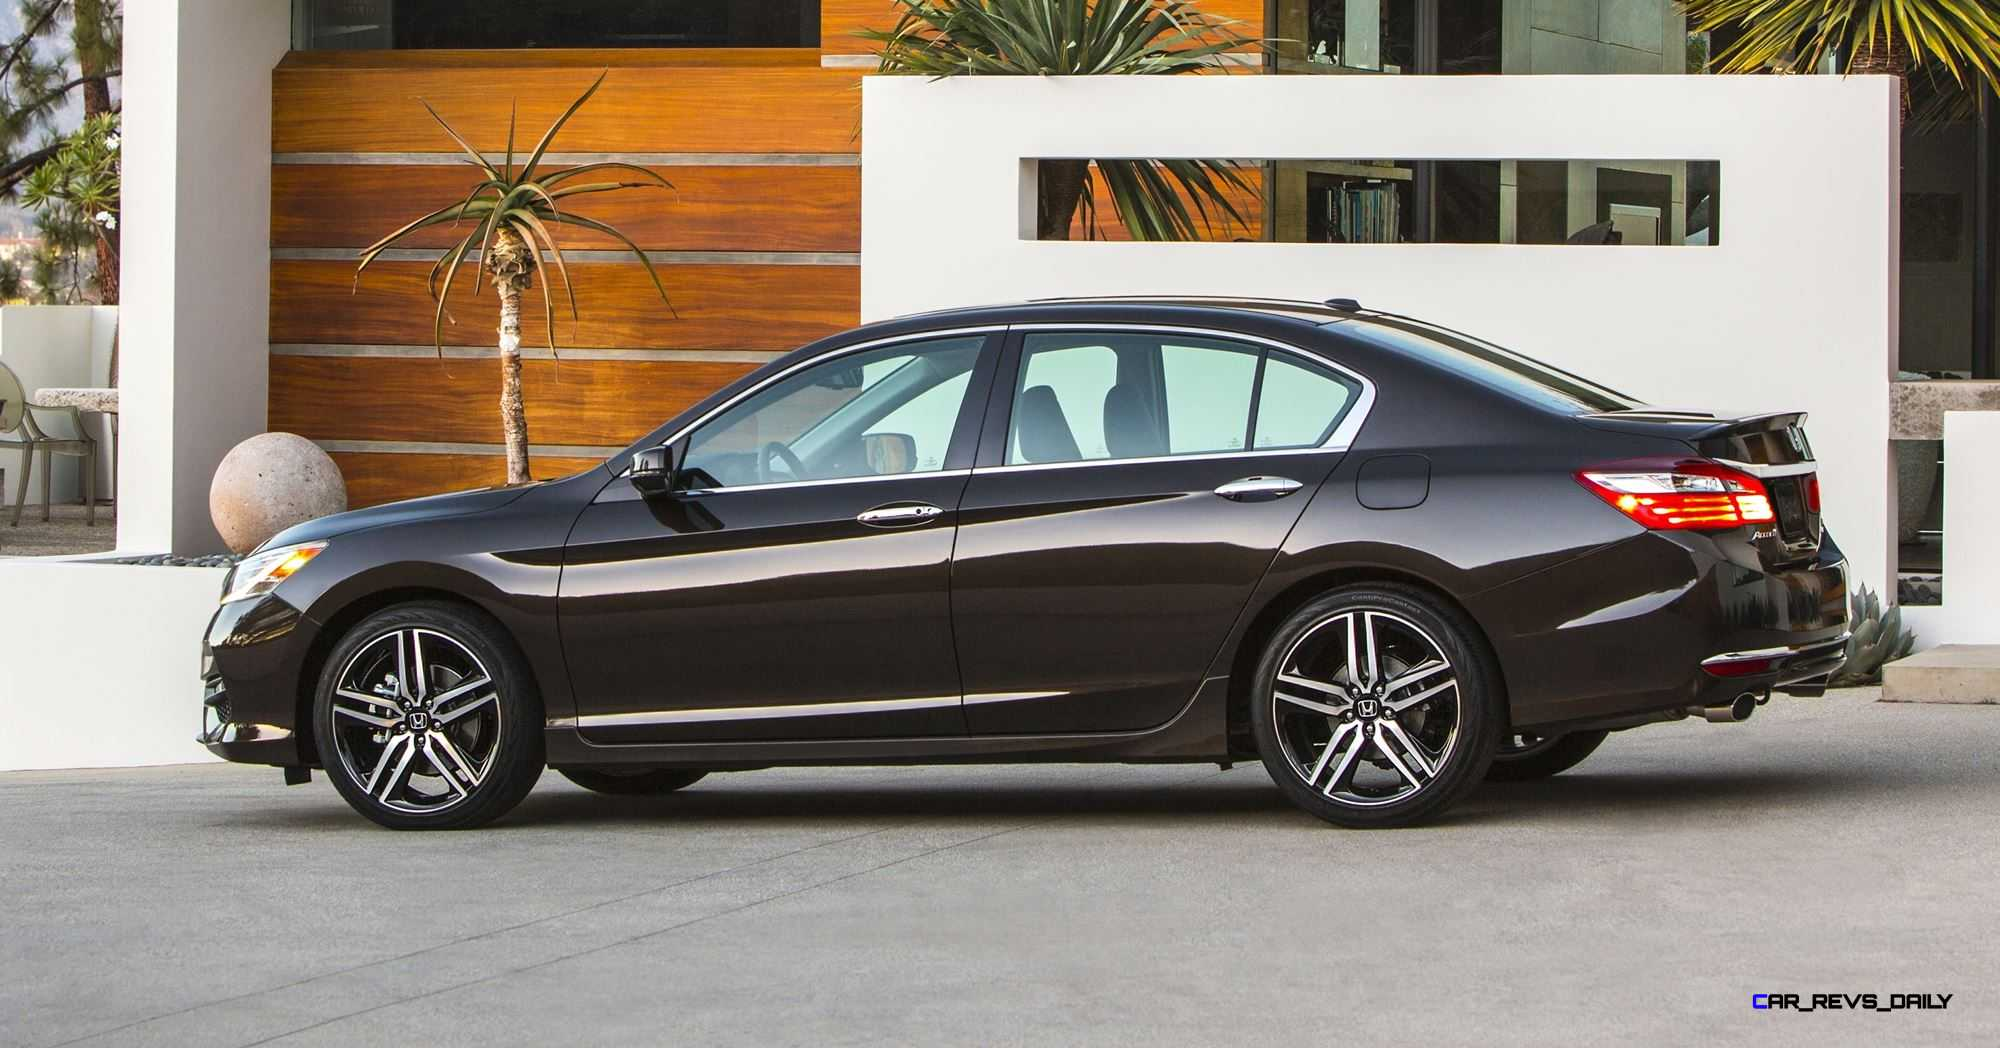 2016 honda accord 2016 honda accord 2016 honda accord